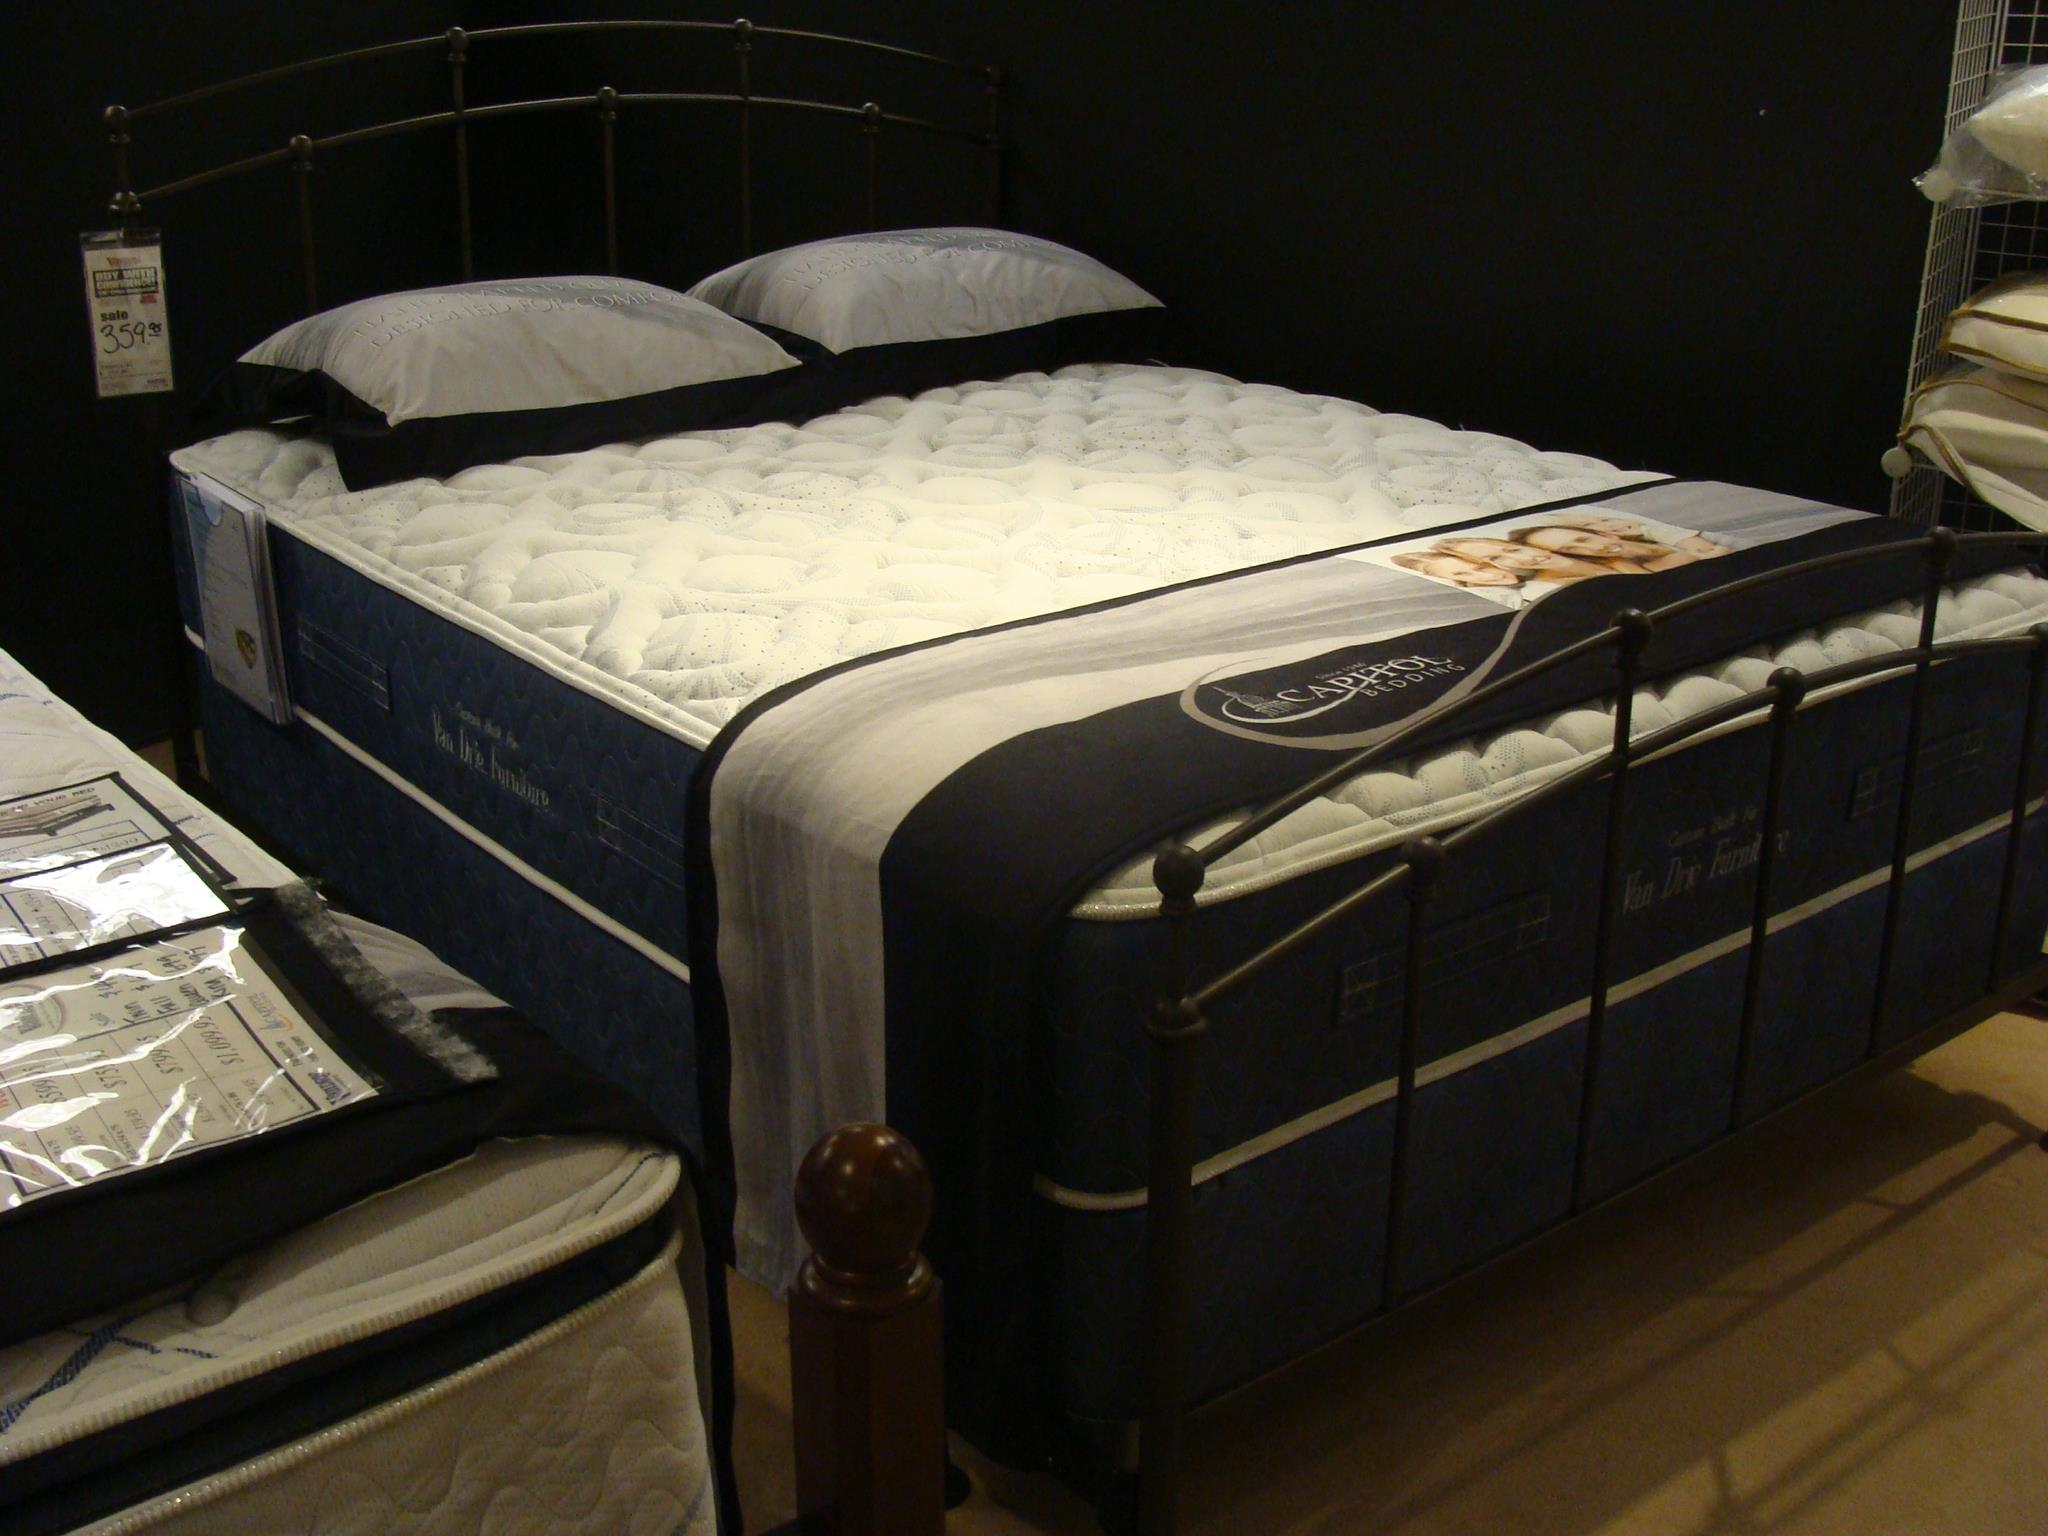 Capitol Bedding Melbourne Firm Queen Mattress Only - Item Number: Innerspring-Q